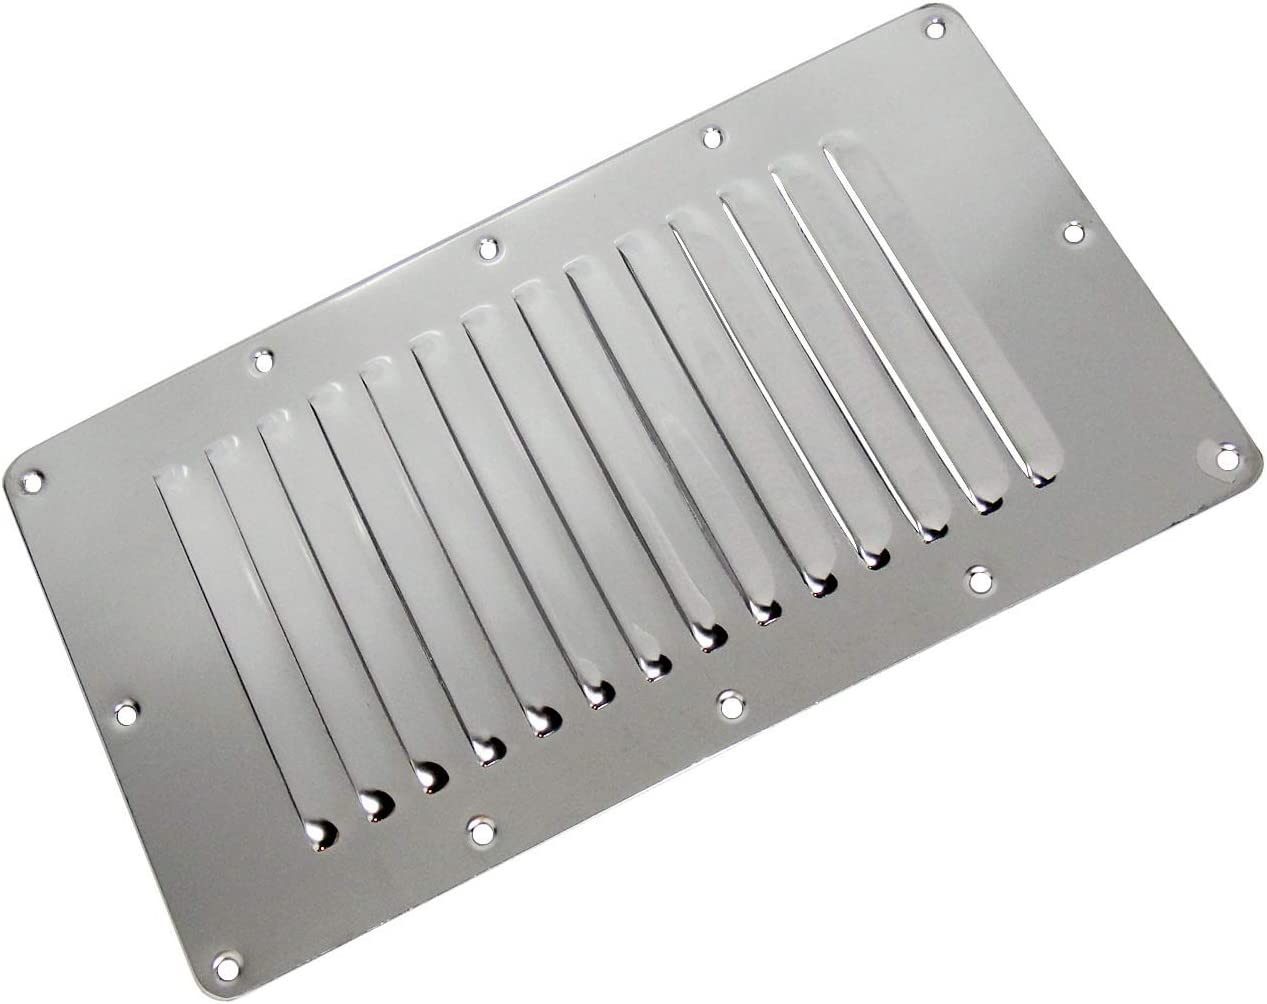 2 PIECES OF STAINLESS STEEL SPORT 6 LOUVERED BOAT//MARINE ENGINE VENT